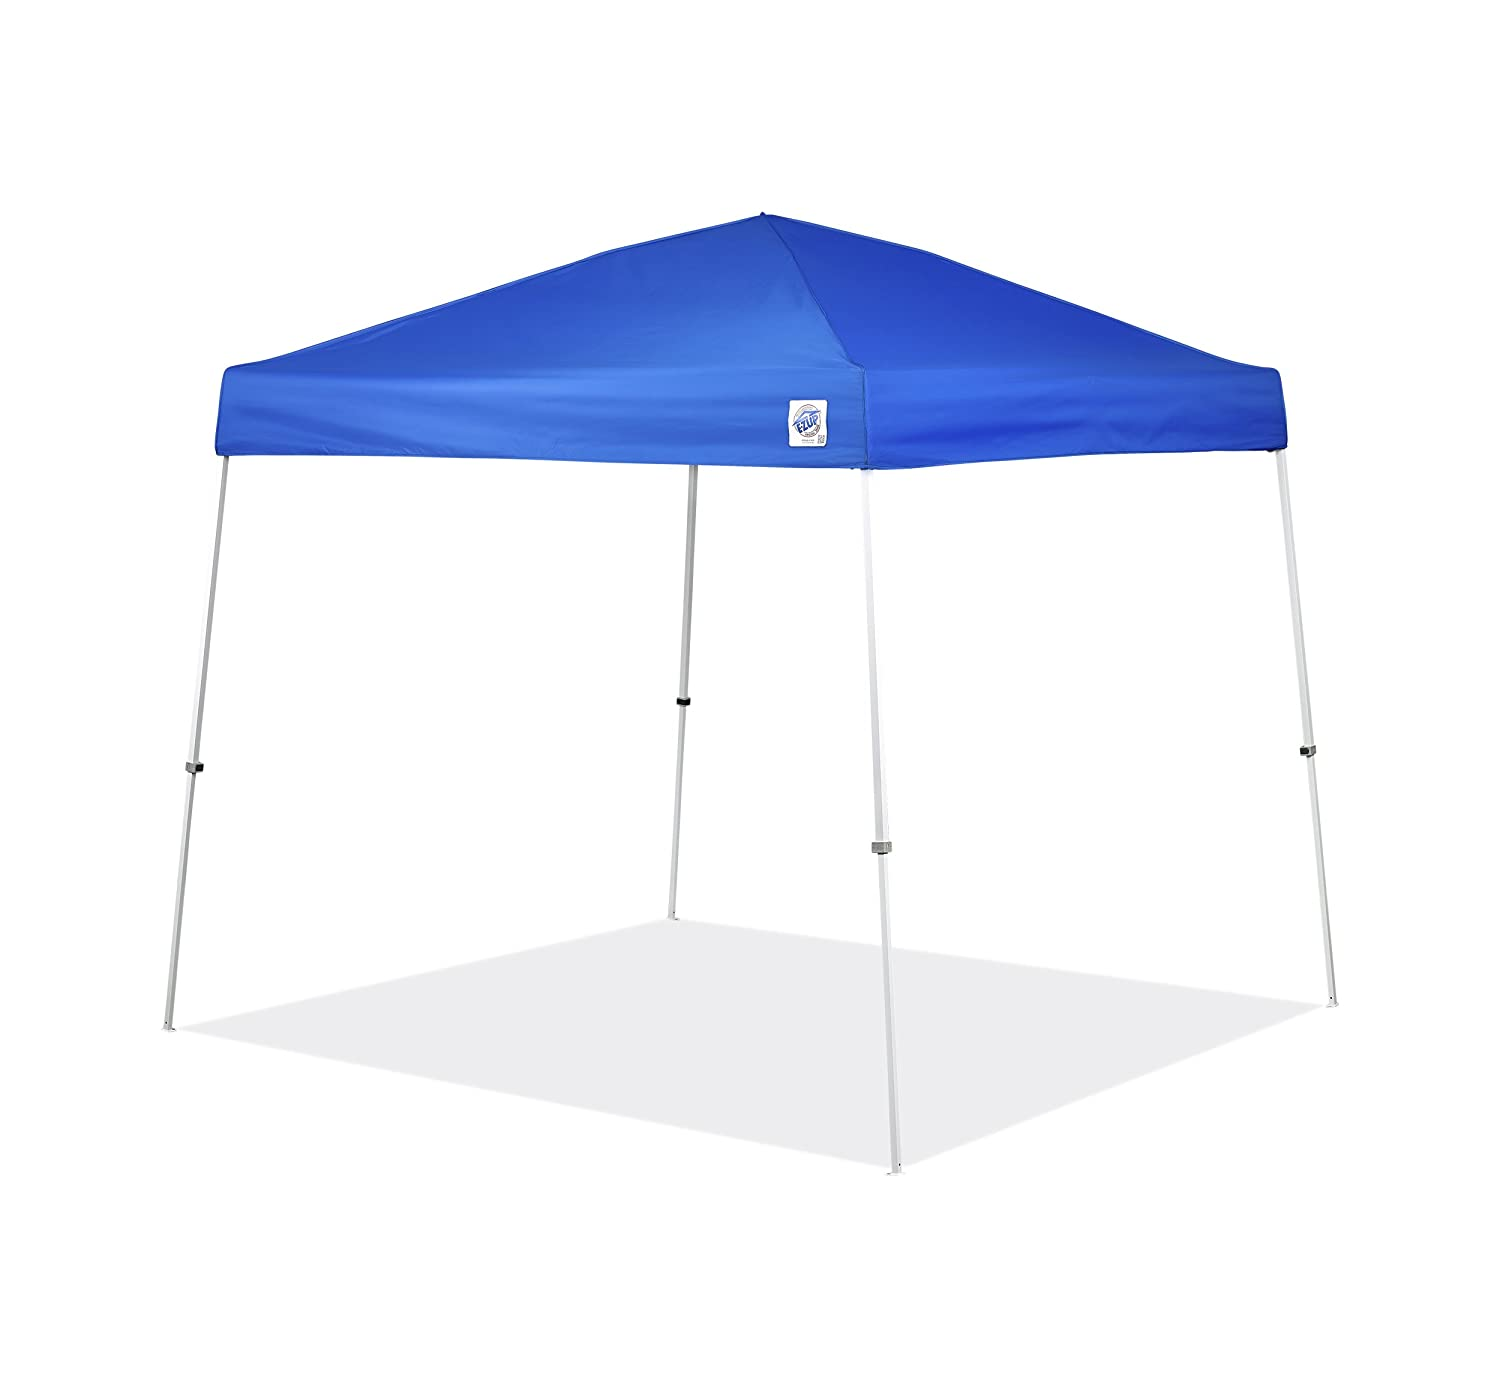 Amazon.com  E-Z UP SR9104BL Sierra II 10 by 10-Feet Canopy Blue  Outdoor Canopies  Garden u0026 Outdoor  sc 1 st  Amazon.com : ez pop up tent - memphite.com